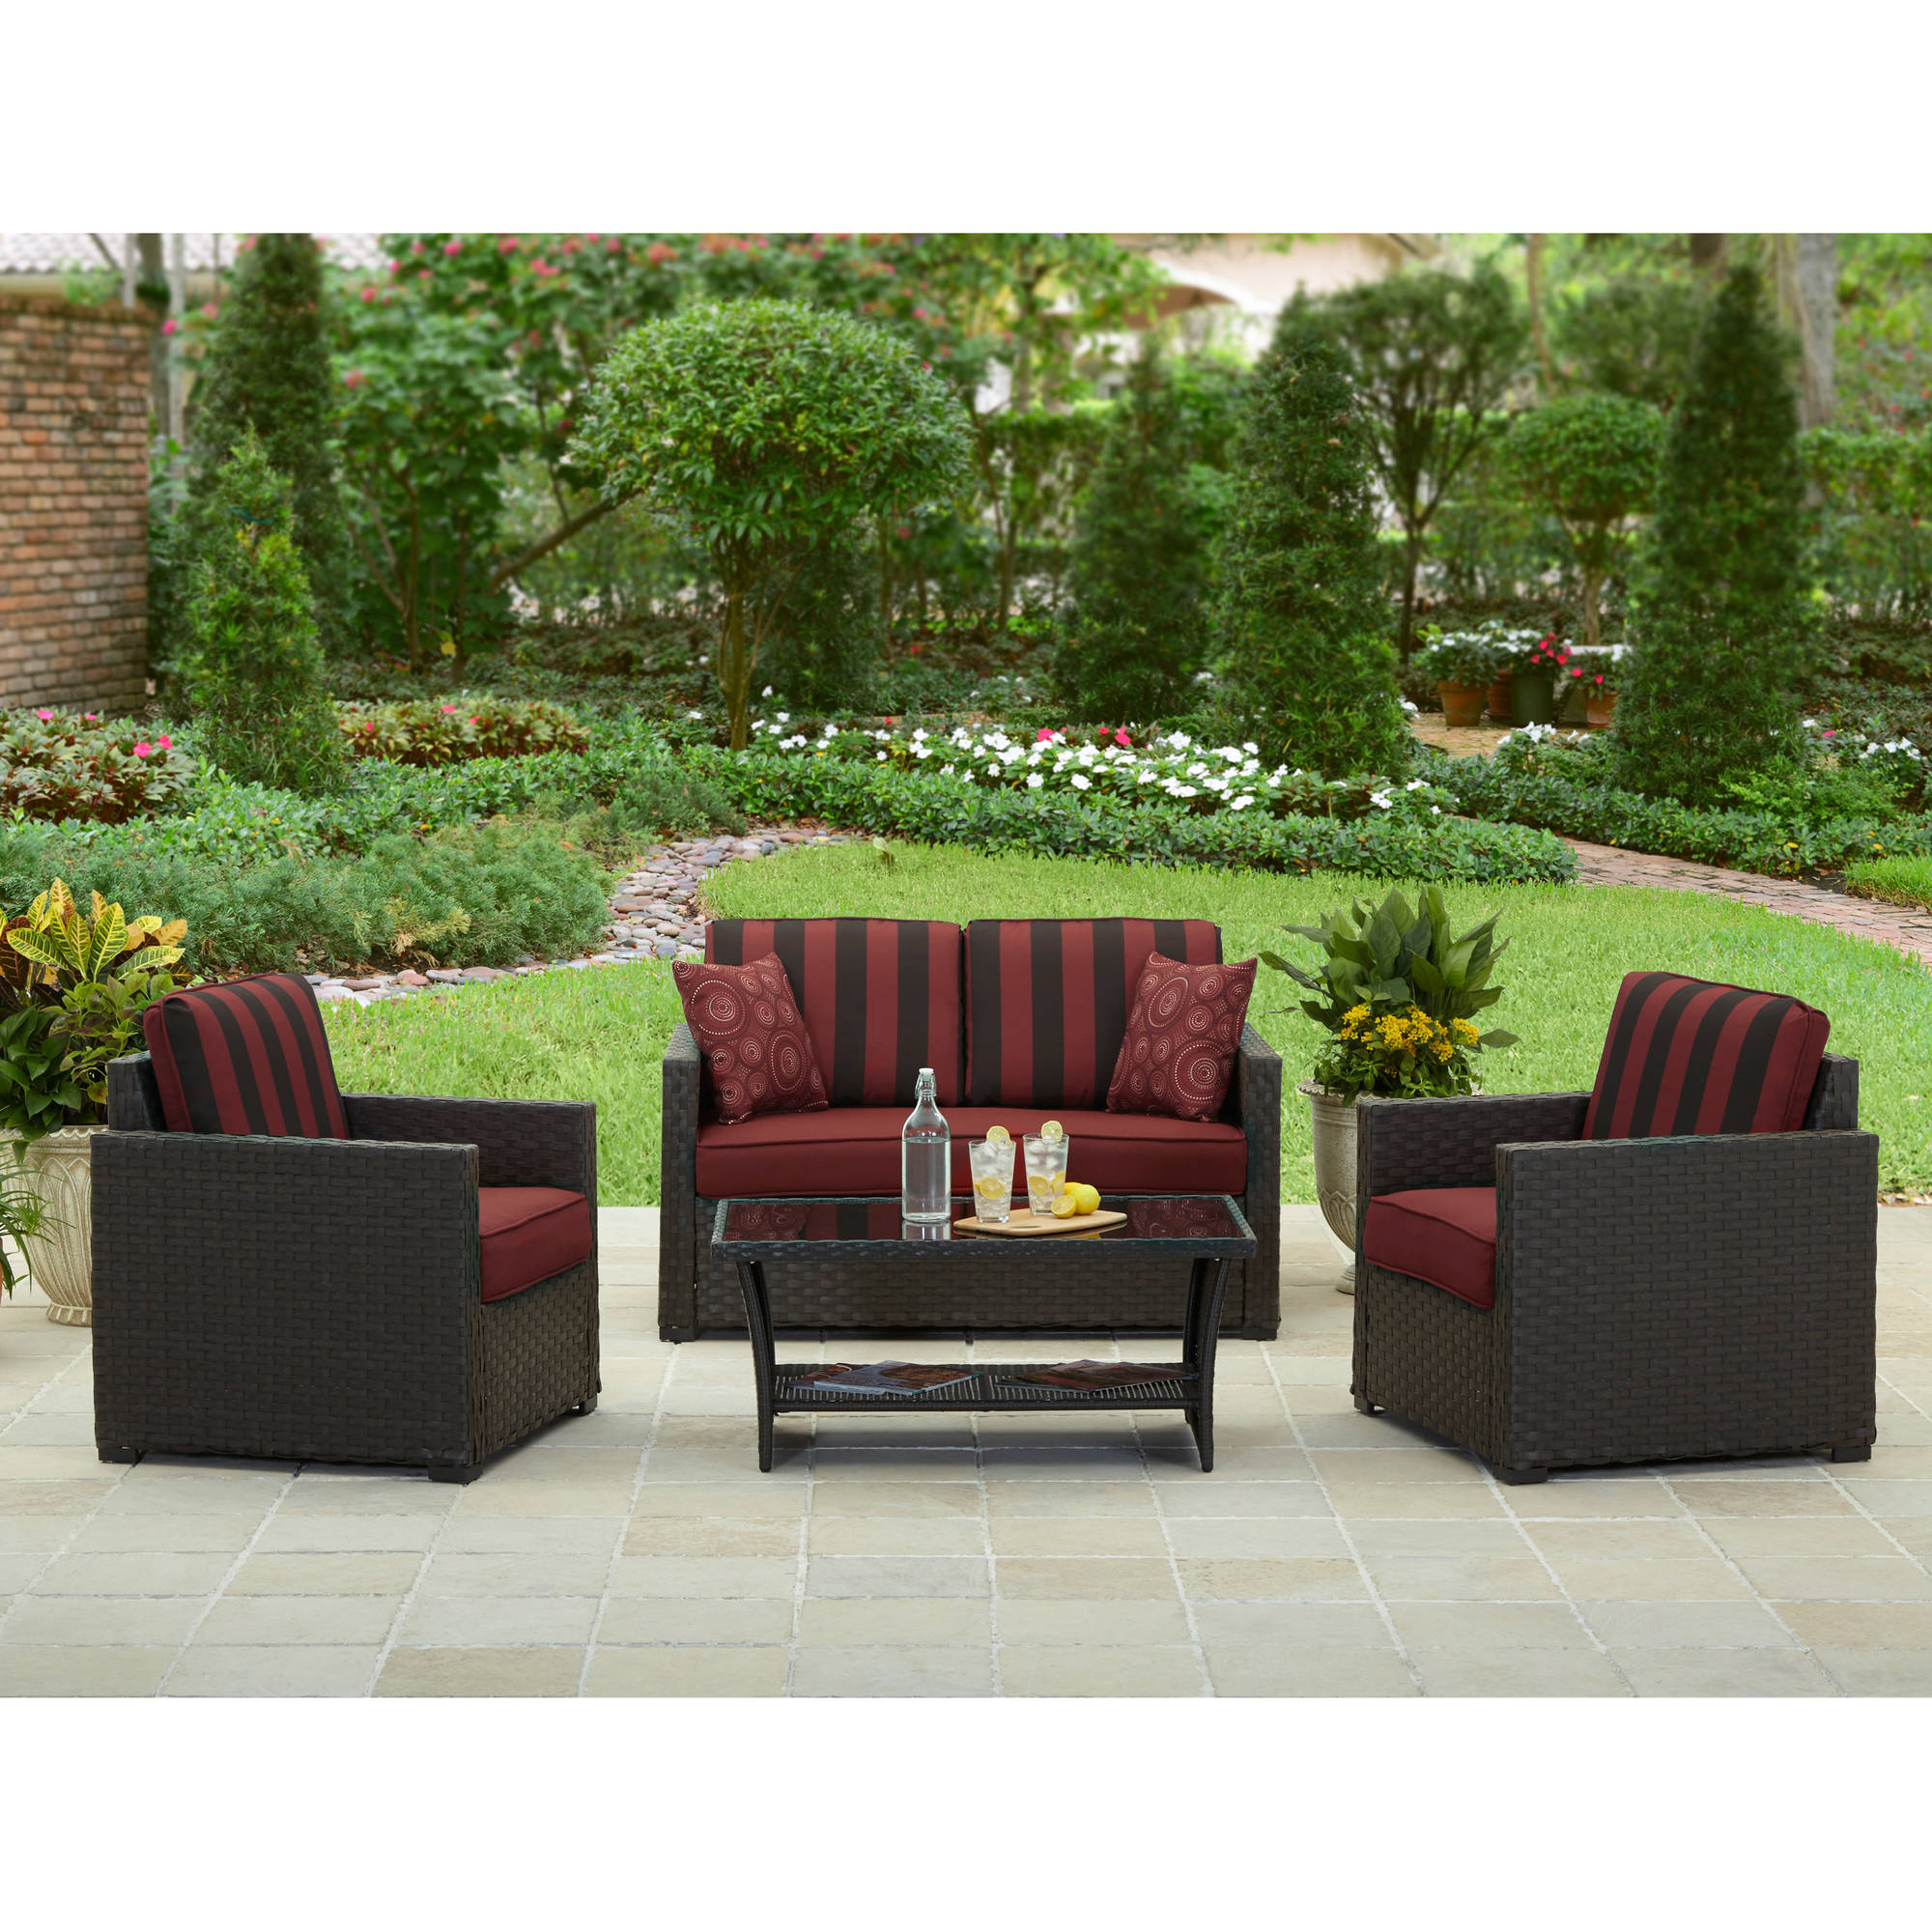 Patio furniture at furniture complete Better homes and gardens gardener